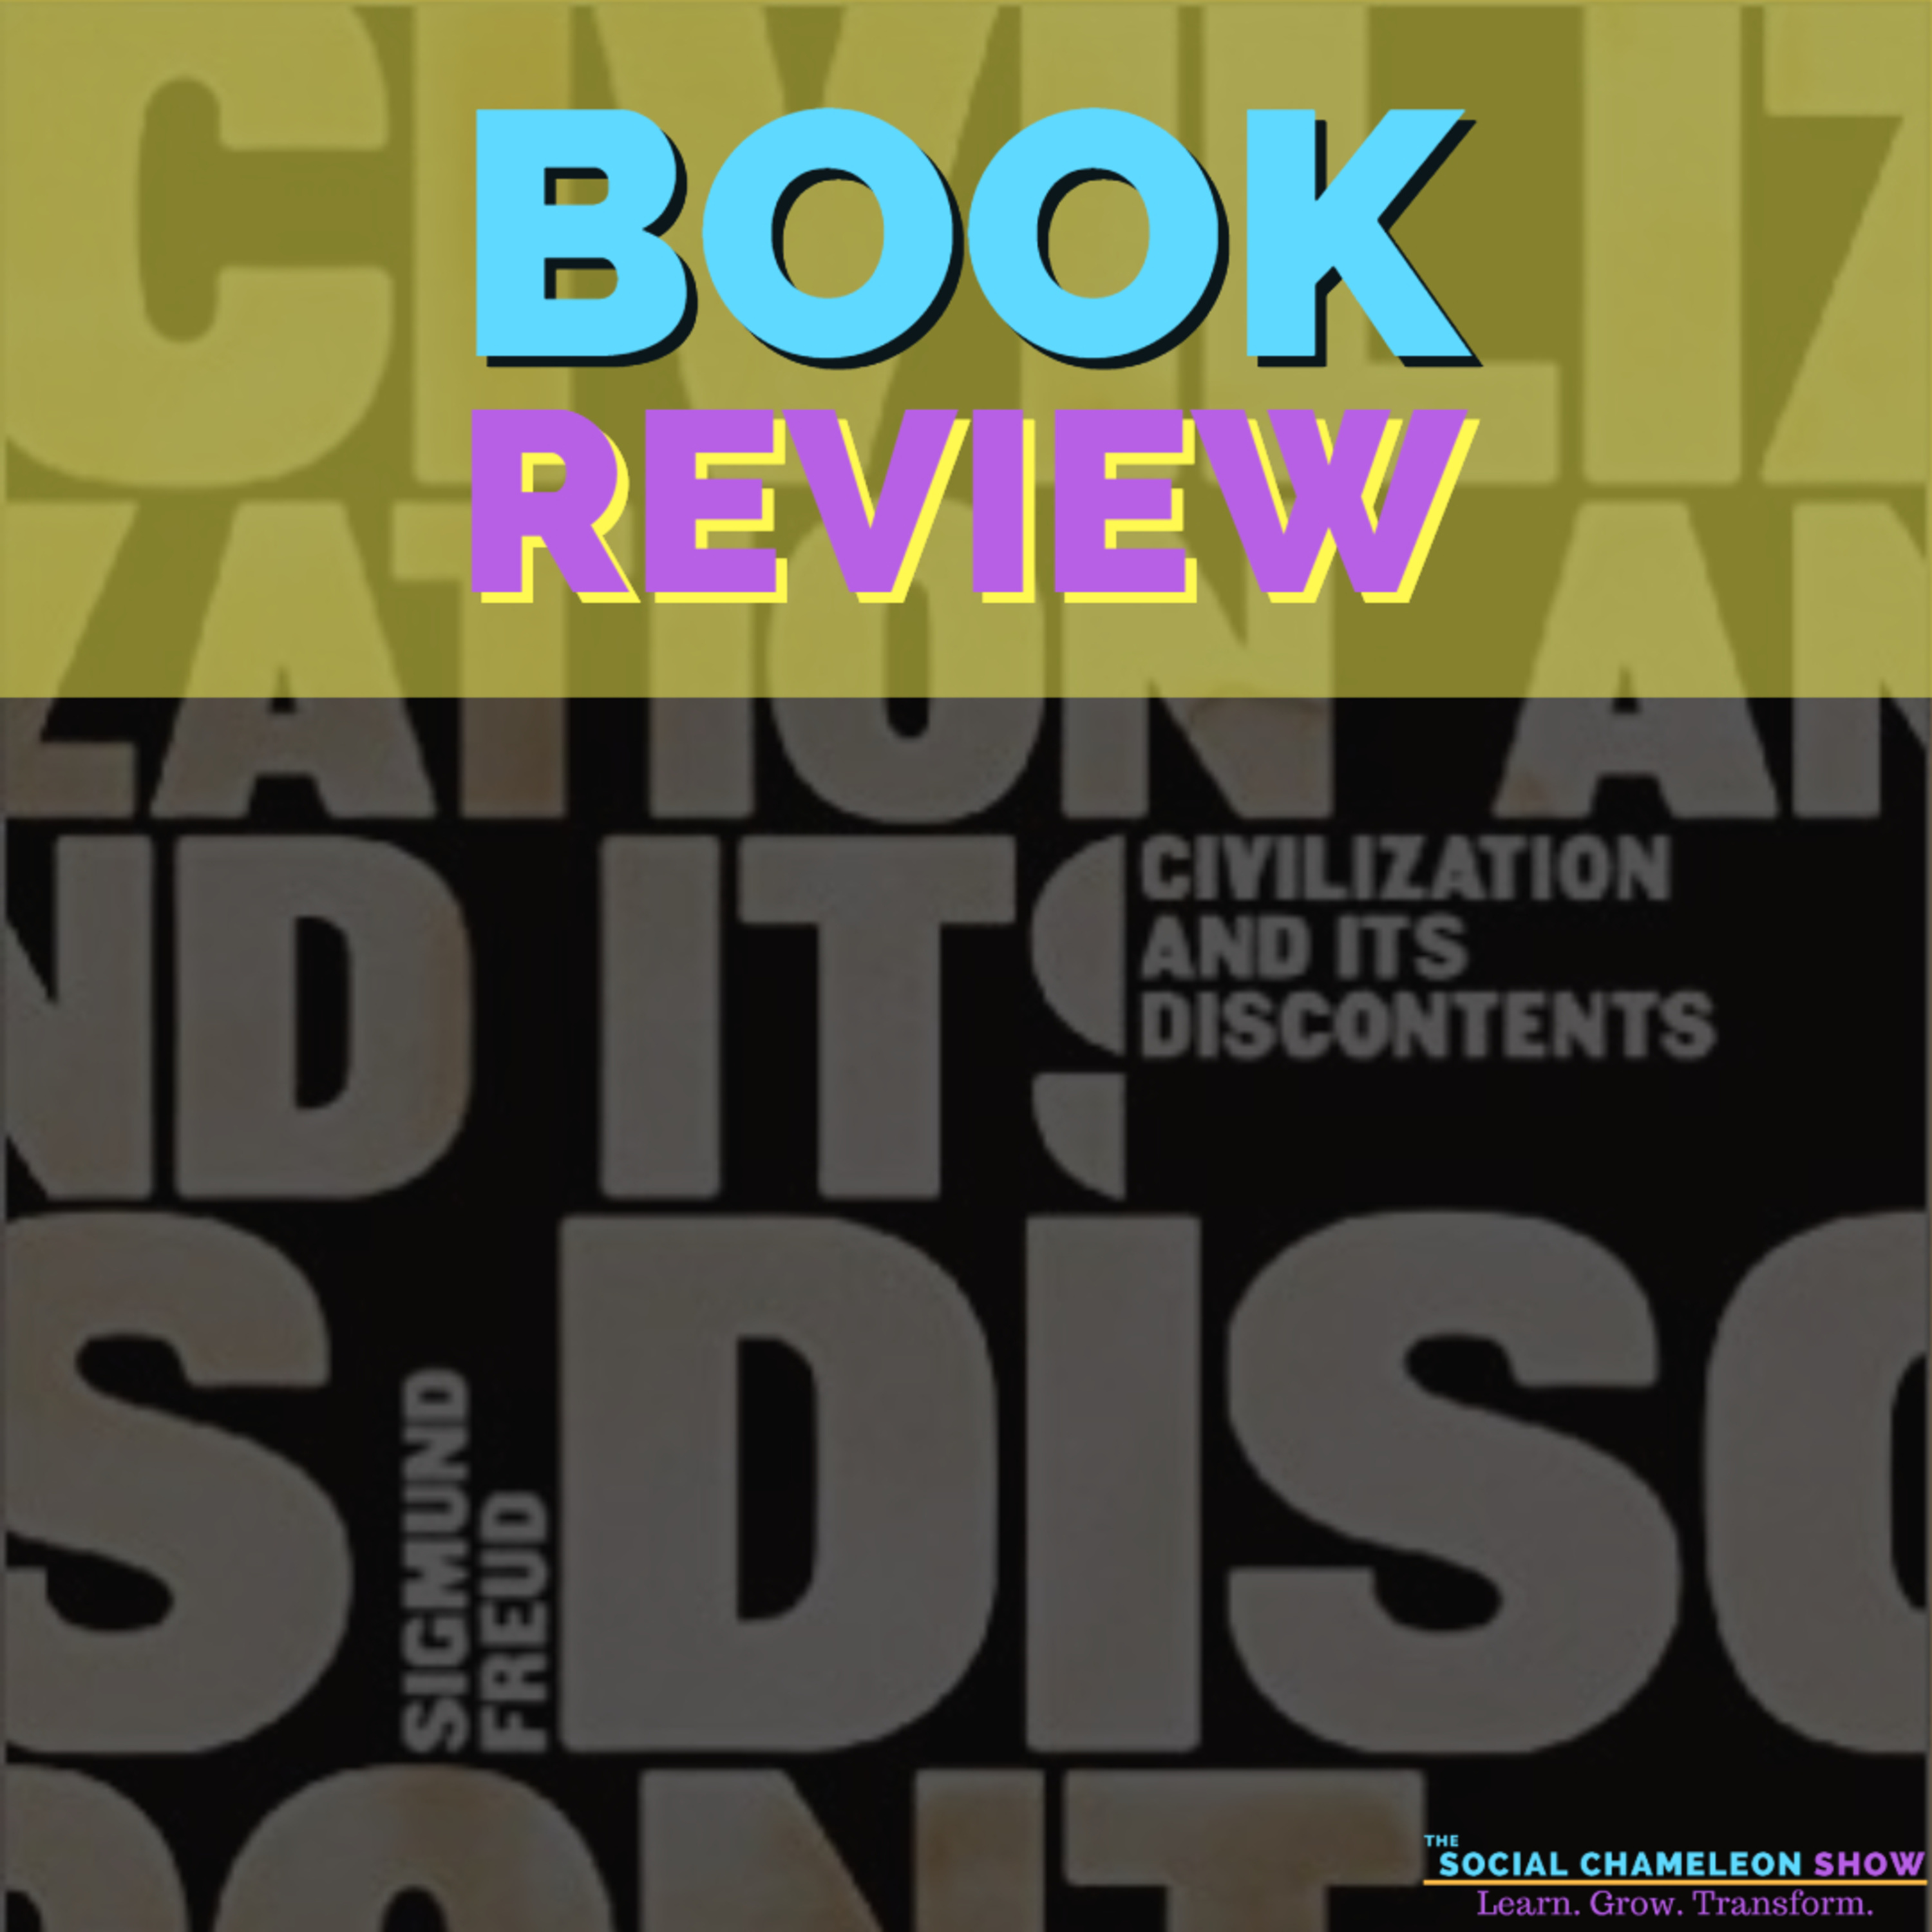 Book Review: Civilization and Its Discontents By Sigmund Freud